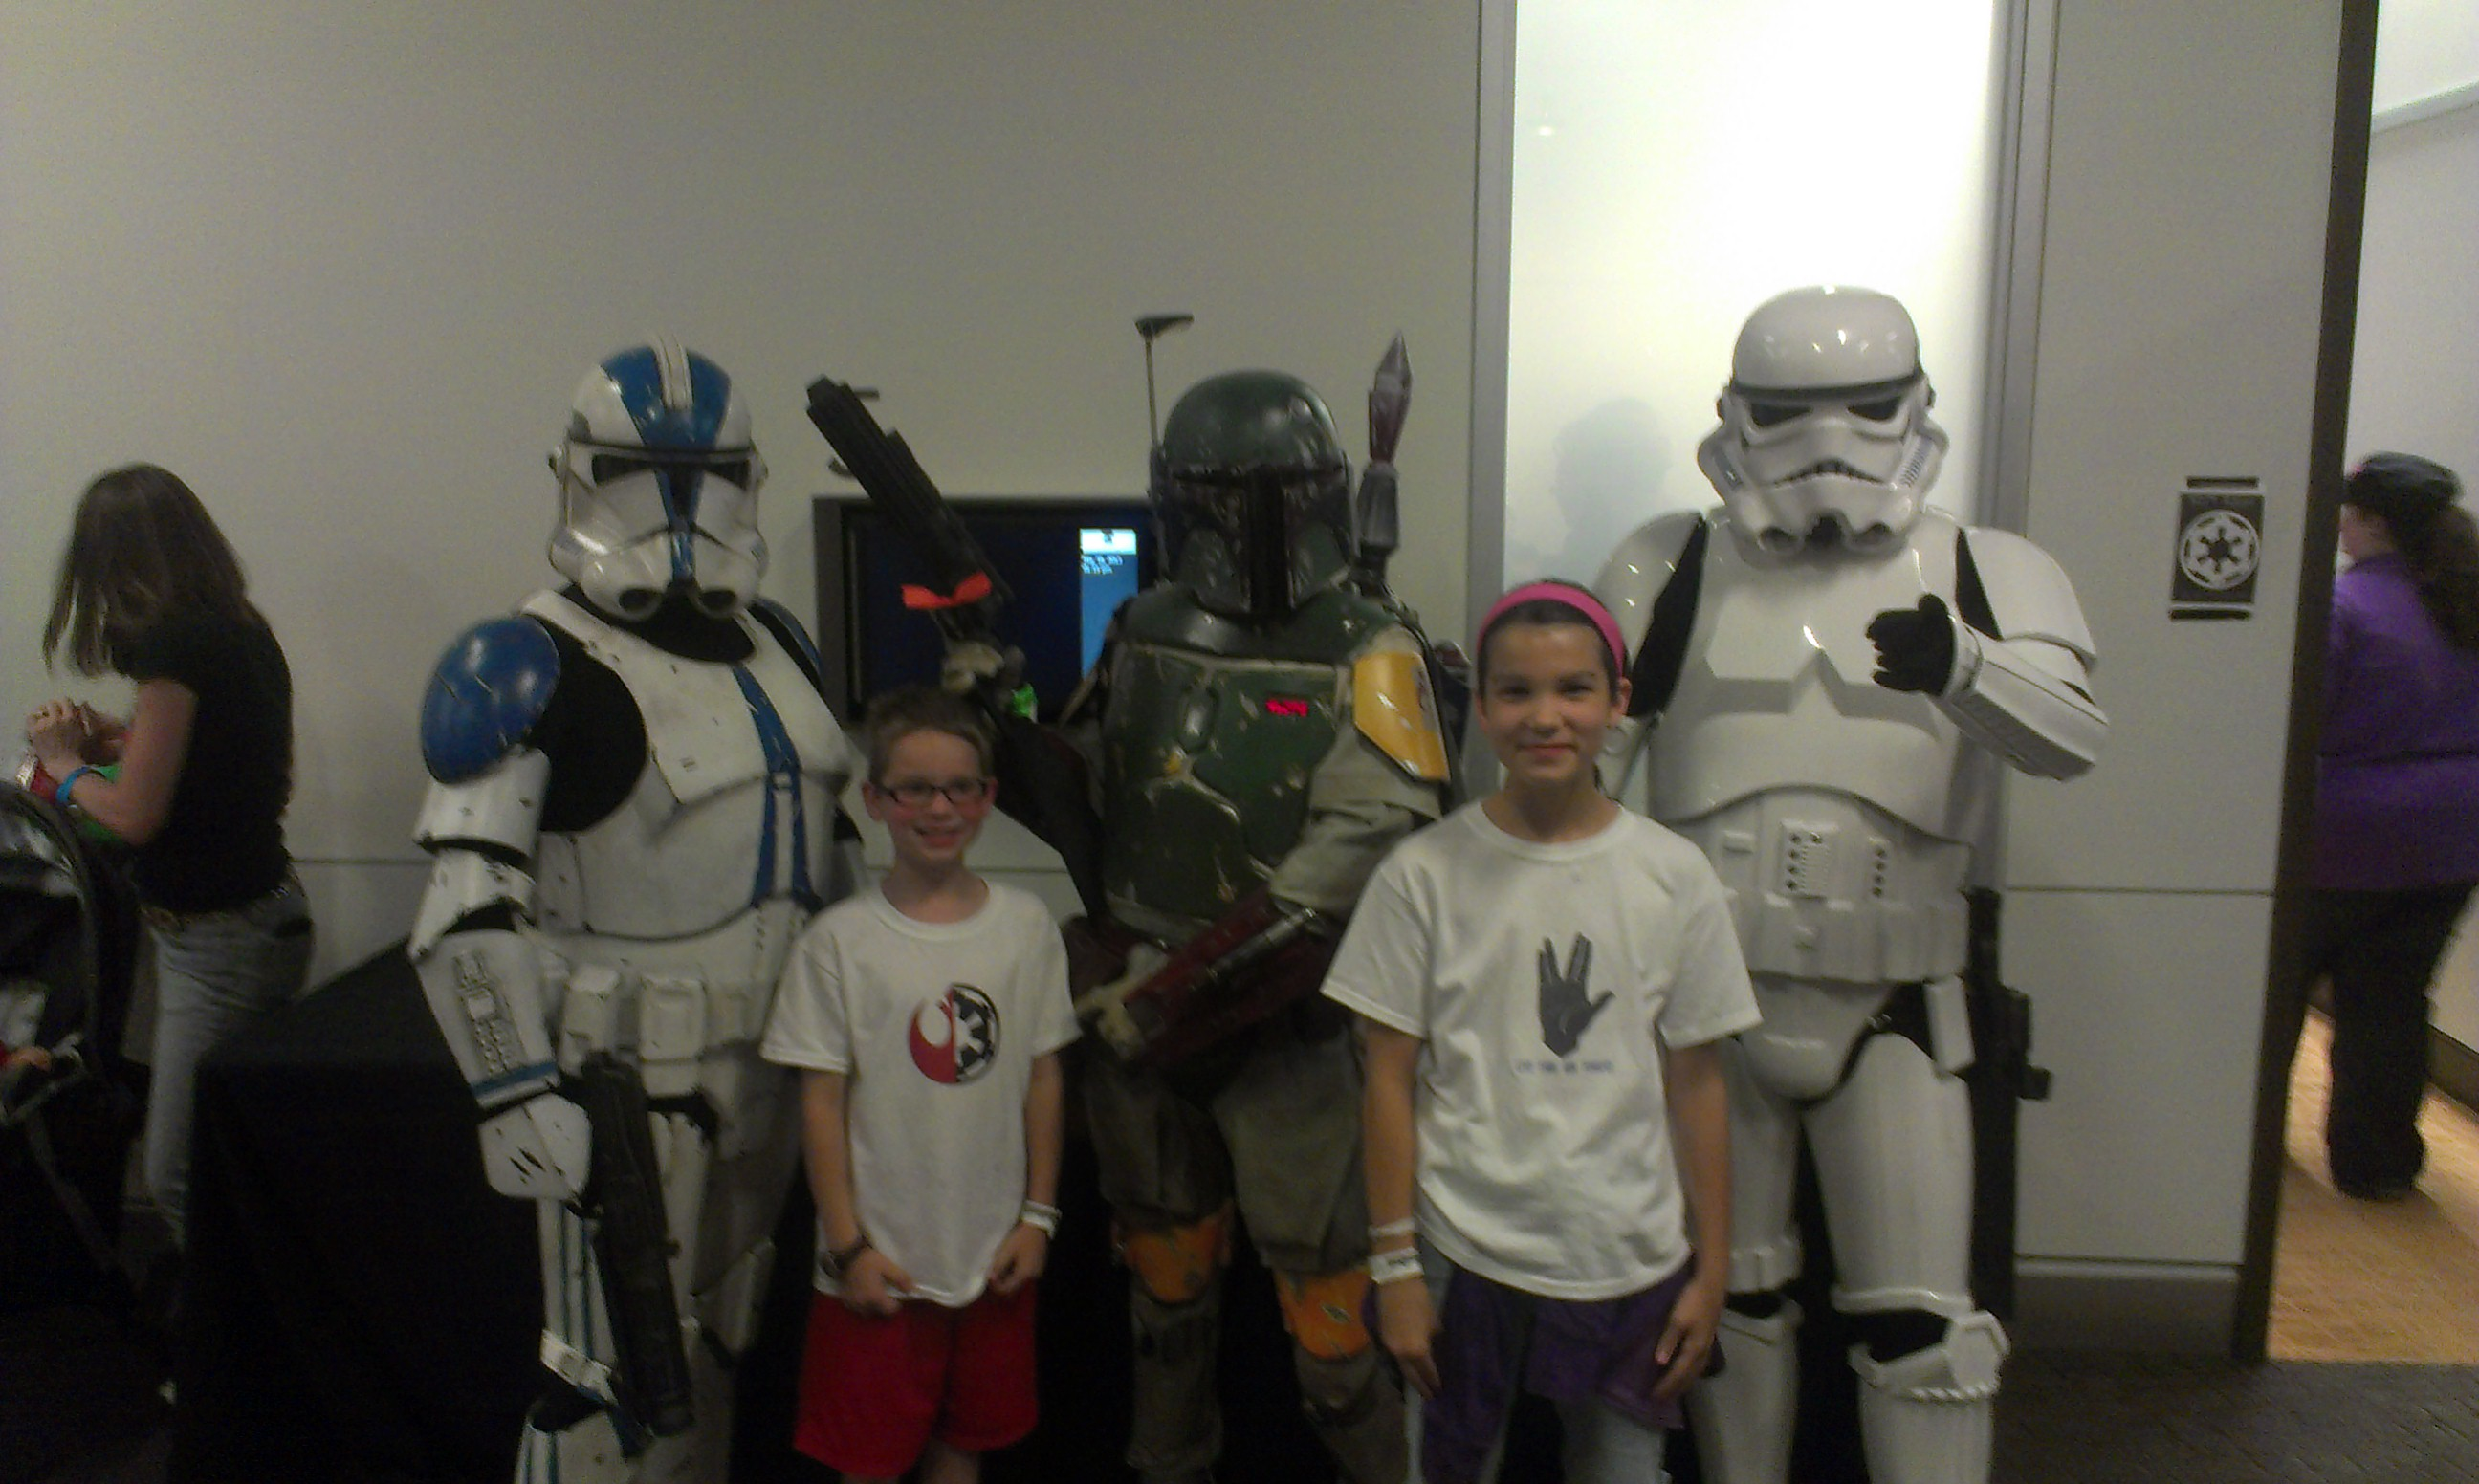 These guys had some great Star Wars costumes!